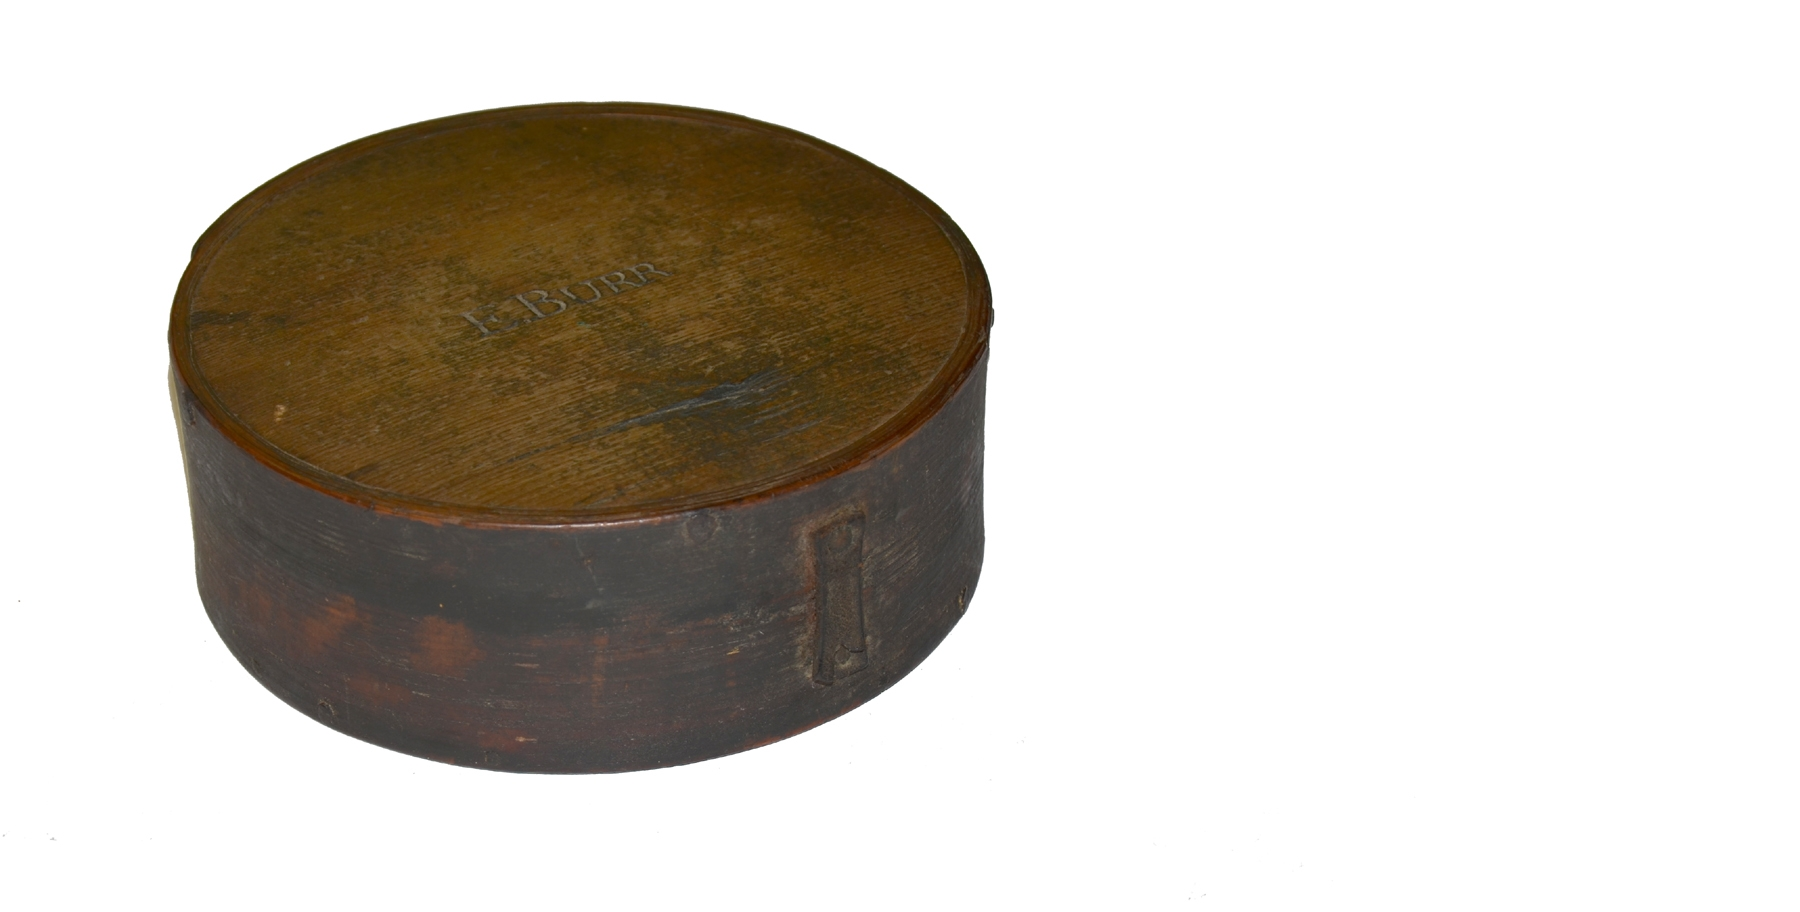 EARLY 19TH CENTURY WOODEN MILITIA CANTEEN WITH NAME